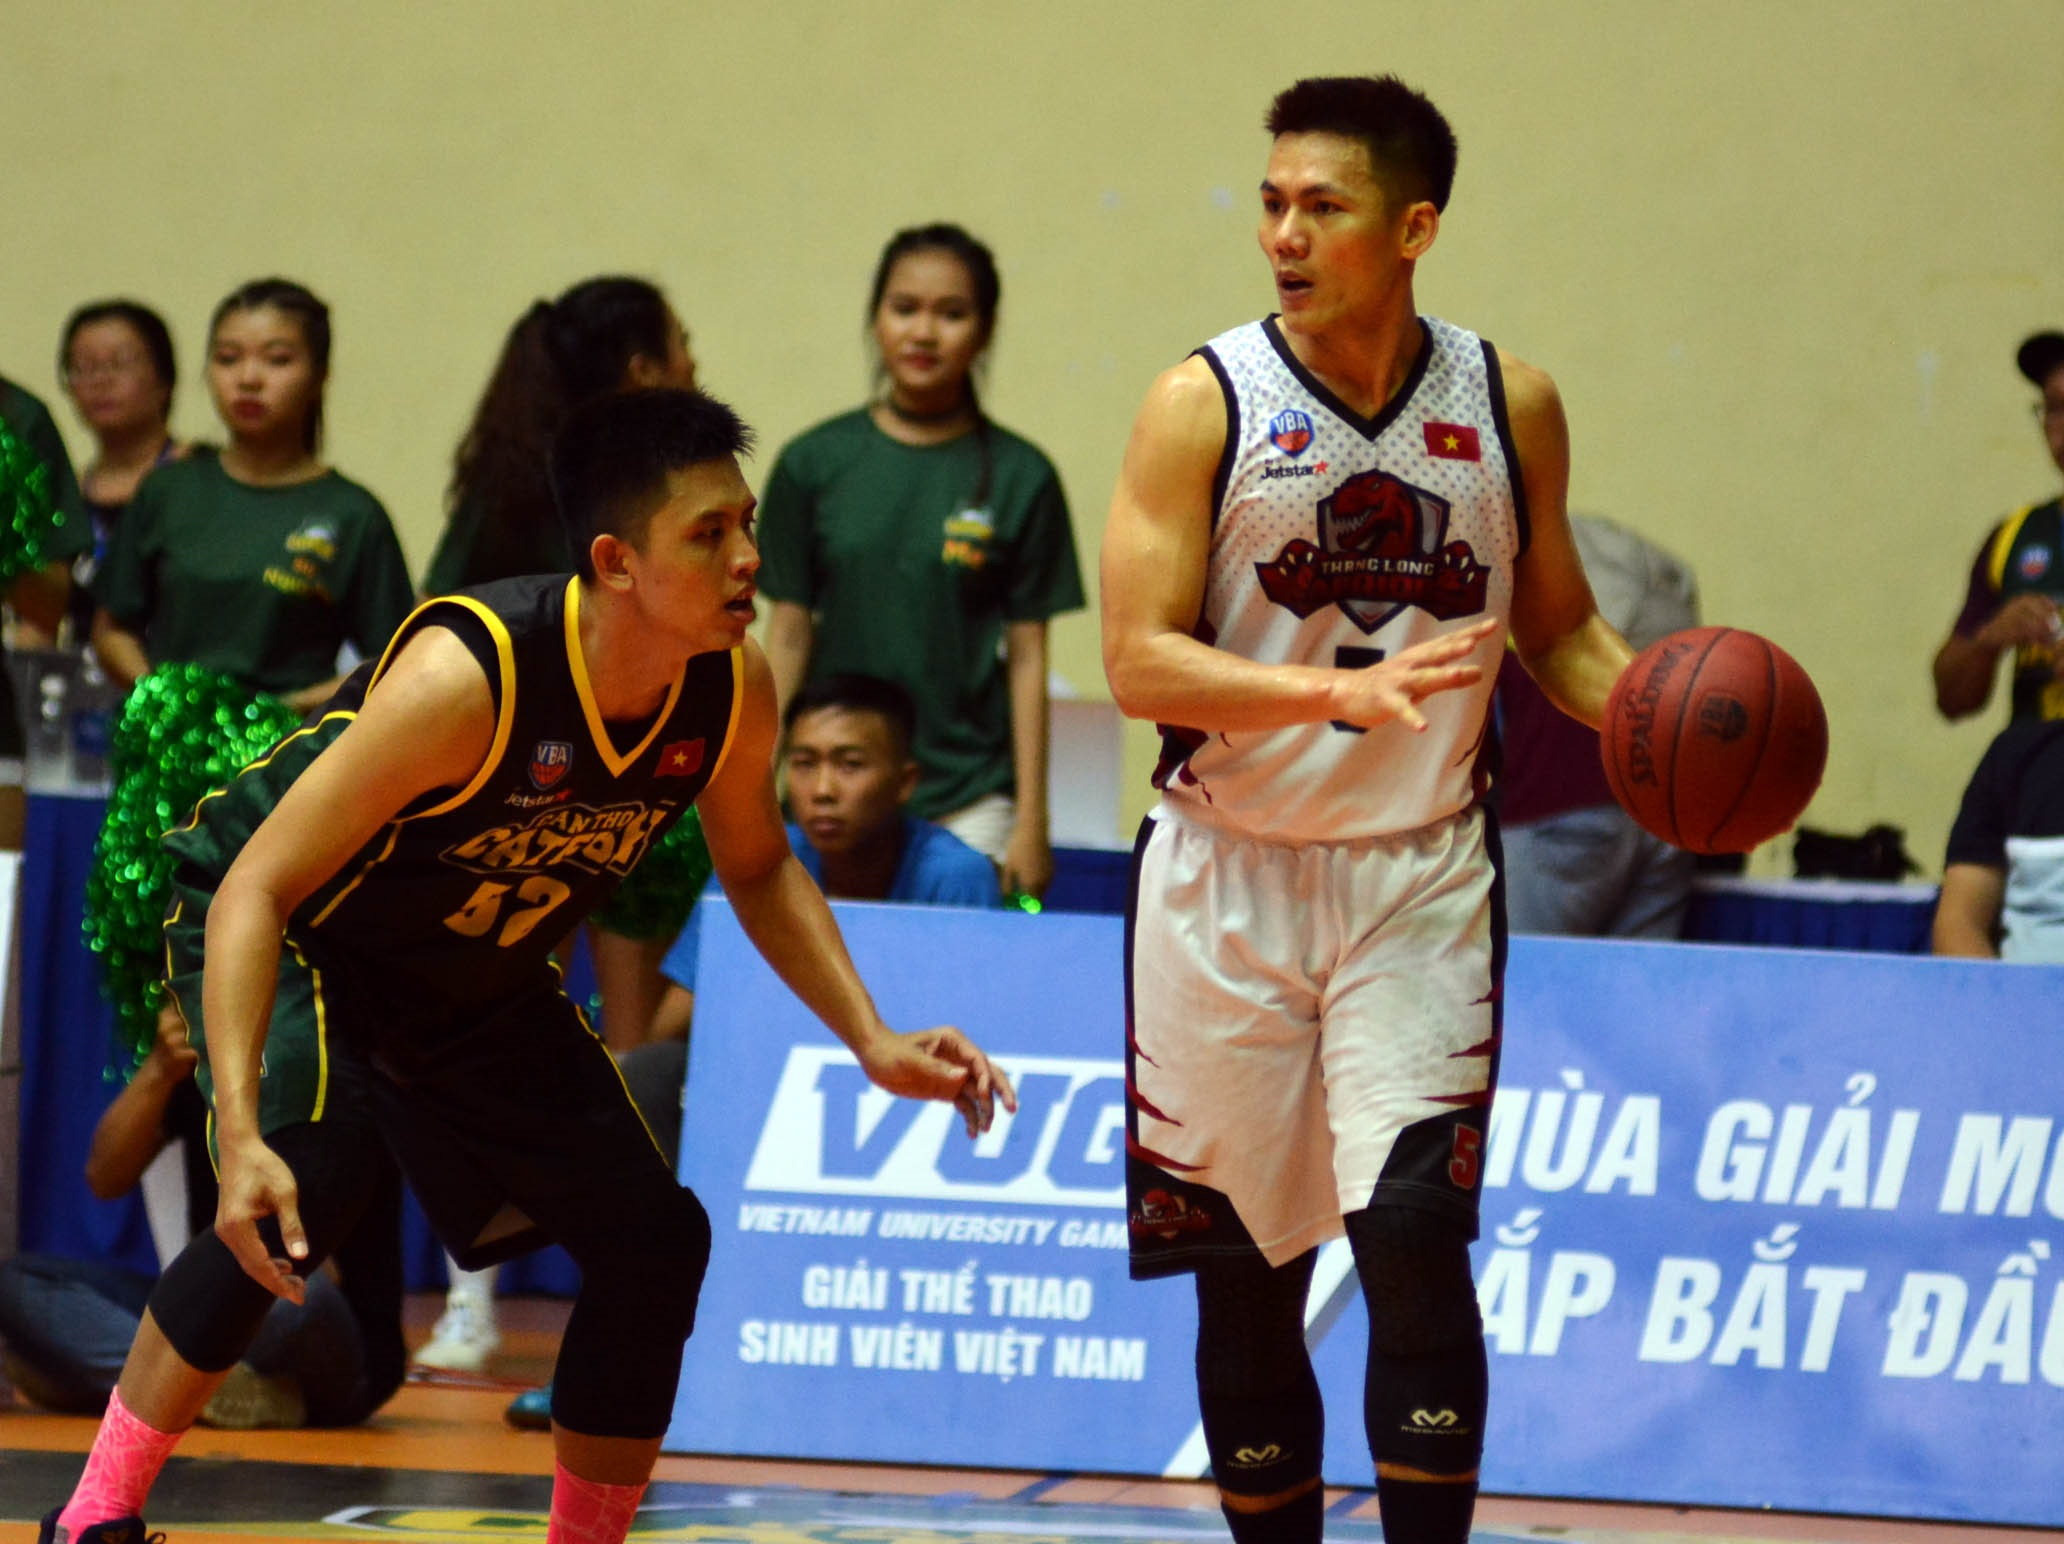 Thanglong Warriors vs Cantho Catfish anh 6